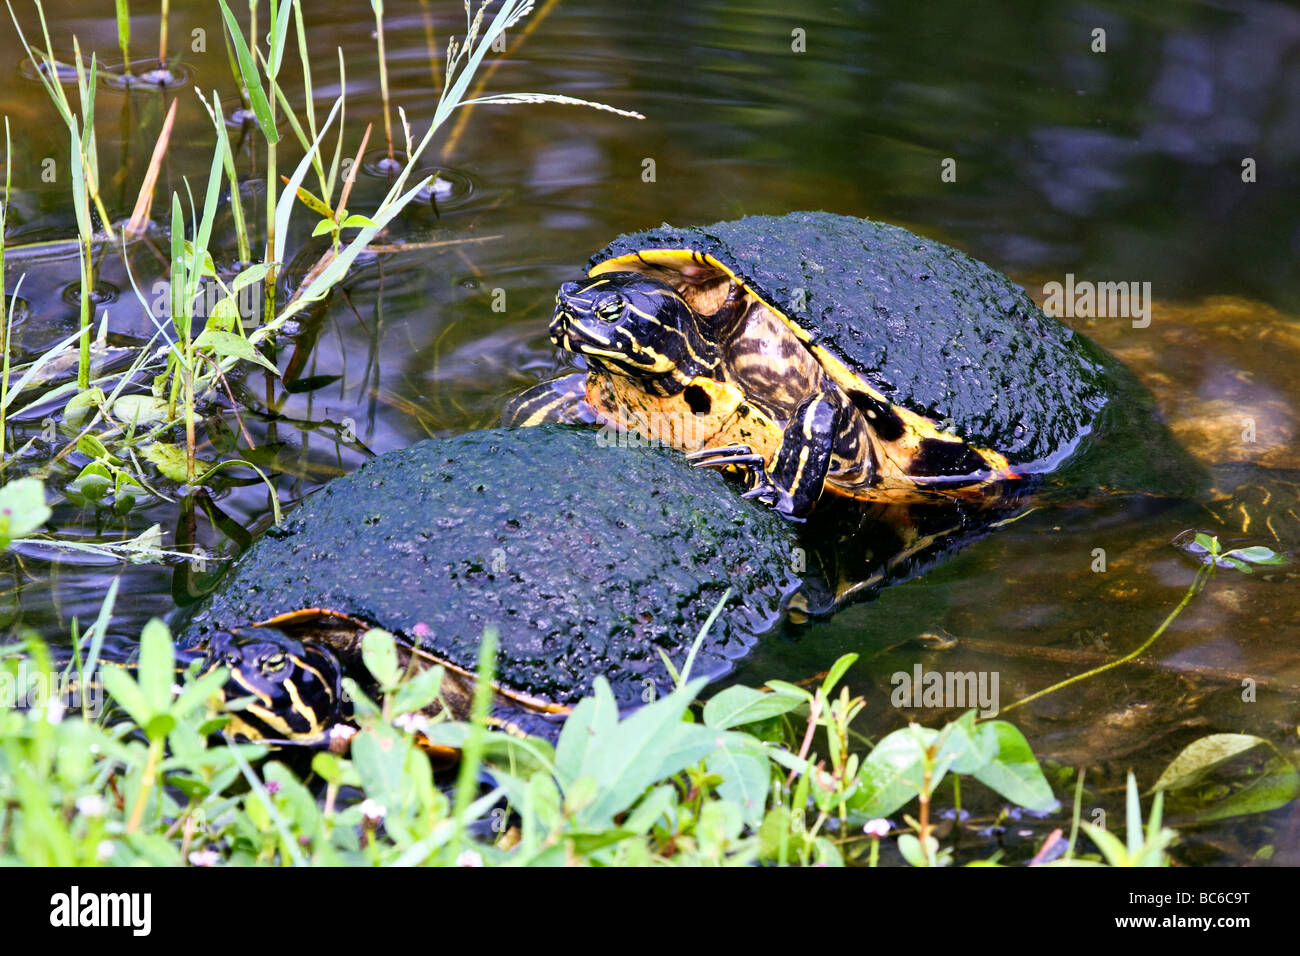 Florida Redbelly Turtle mounting another Stock Photo